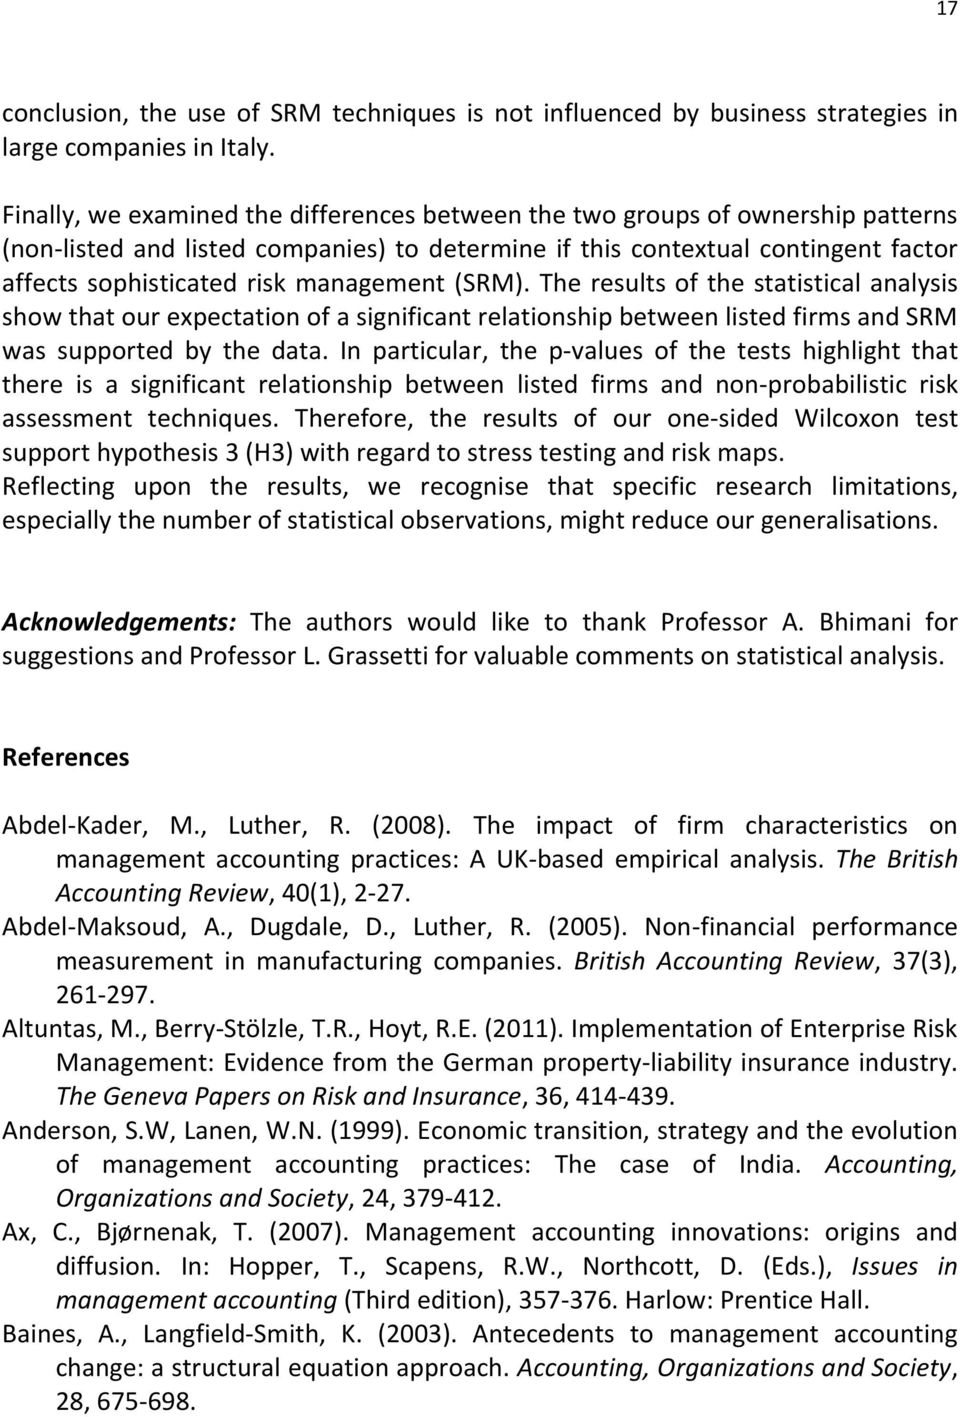 management (SRM). The results of the statistical analysis show that our expectation of a significant relationship between listed firms and SRM was supported by the data.